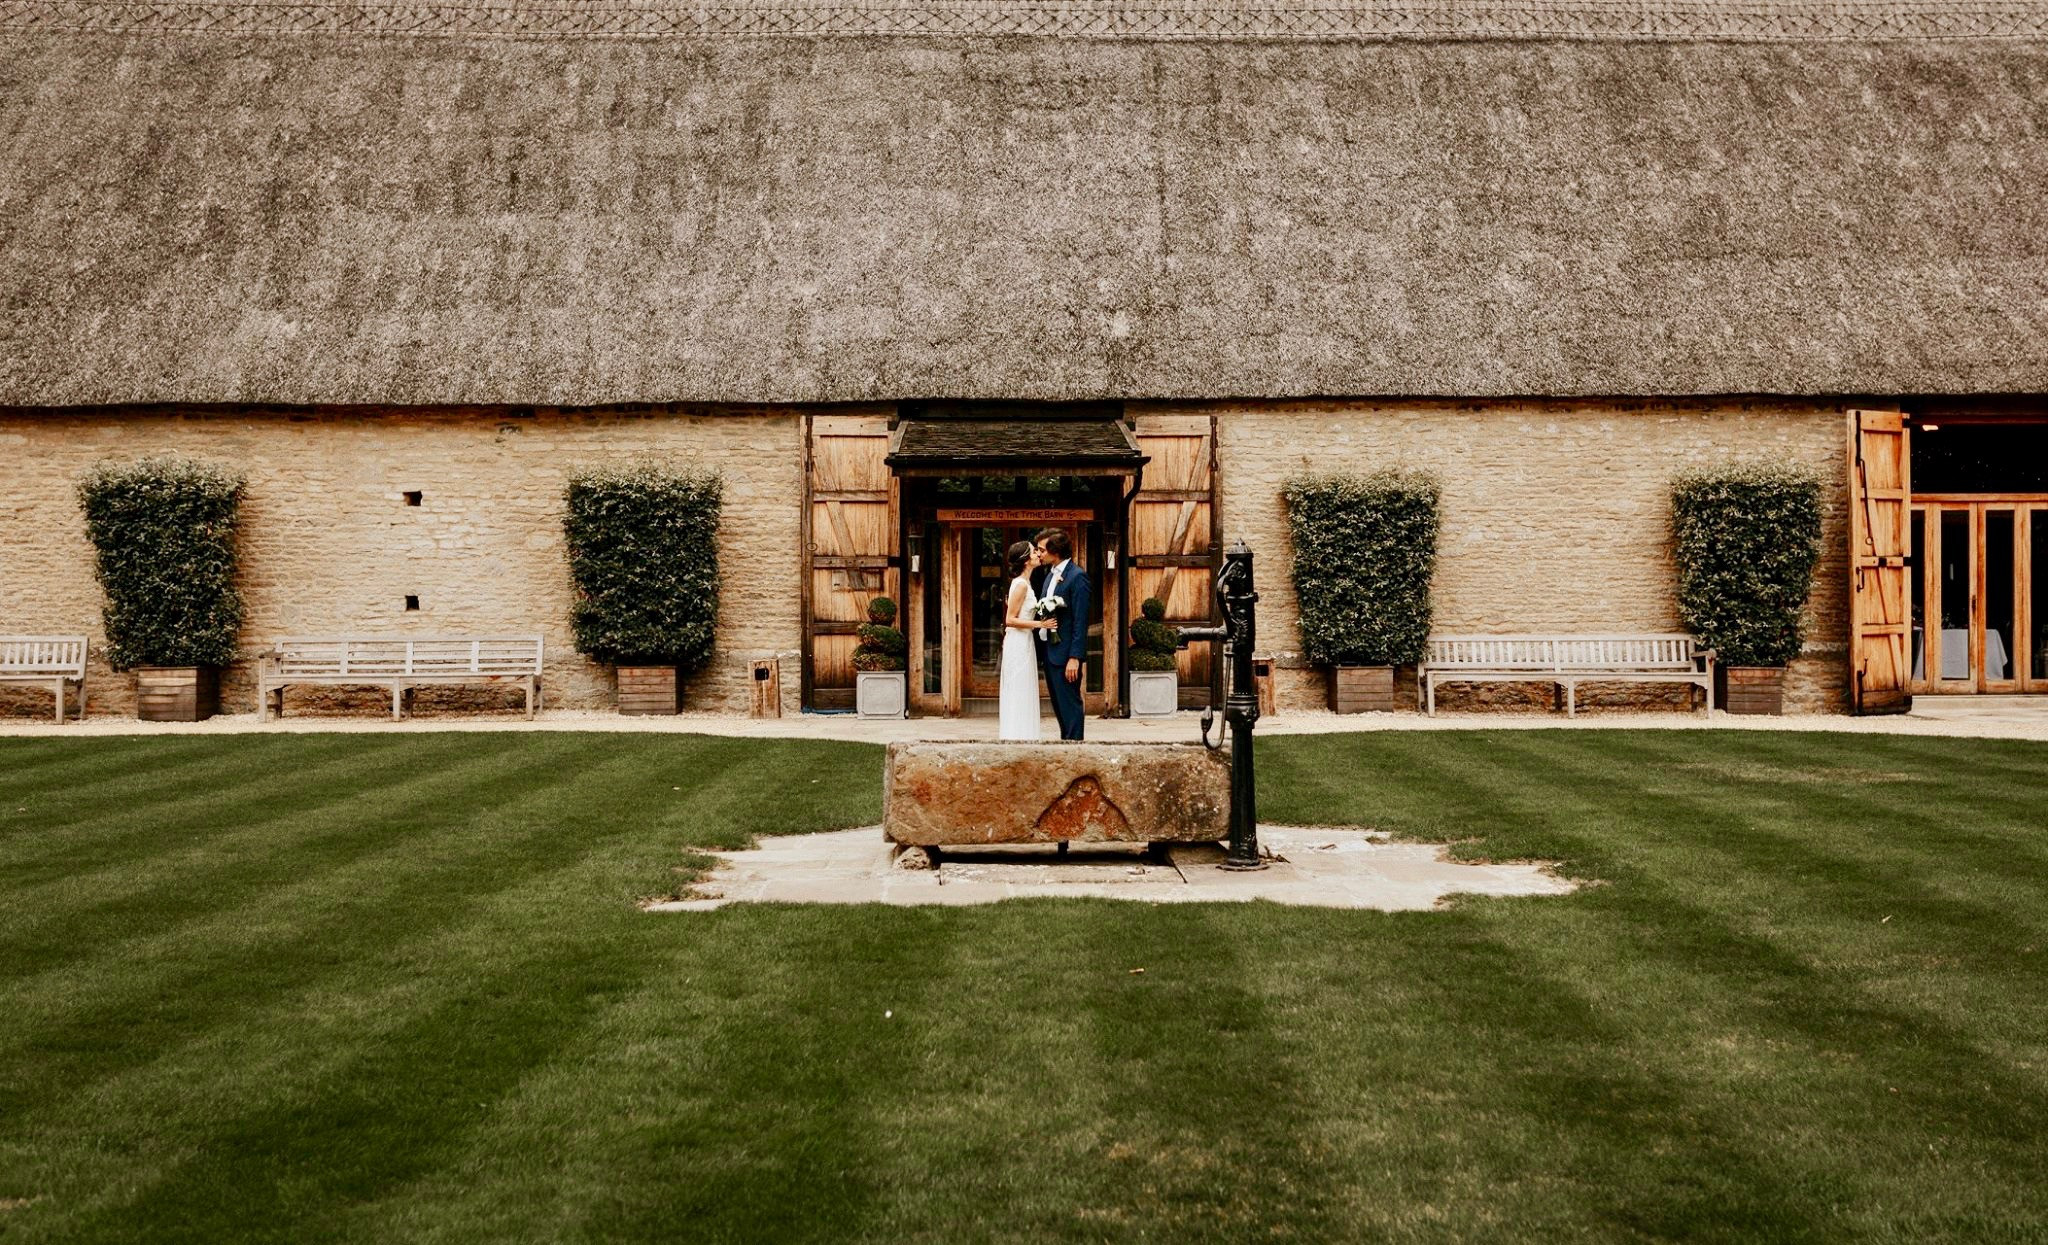 wedding inpso, wedding venue inspo, wedding ideas, barn wedding, bride to be, wedding planning